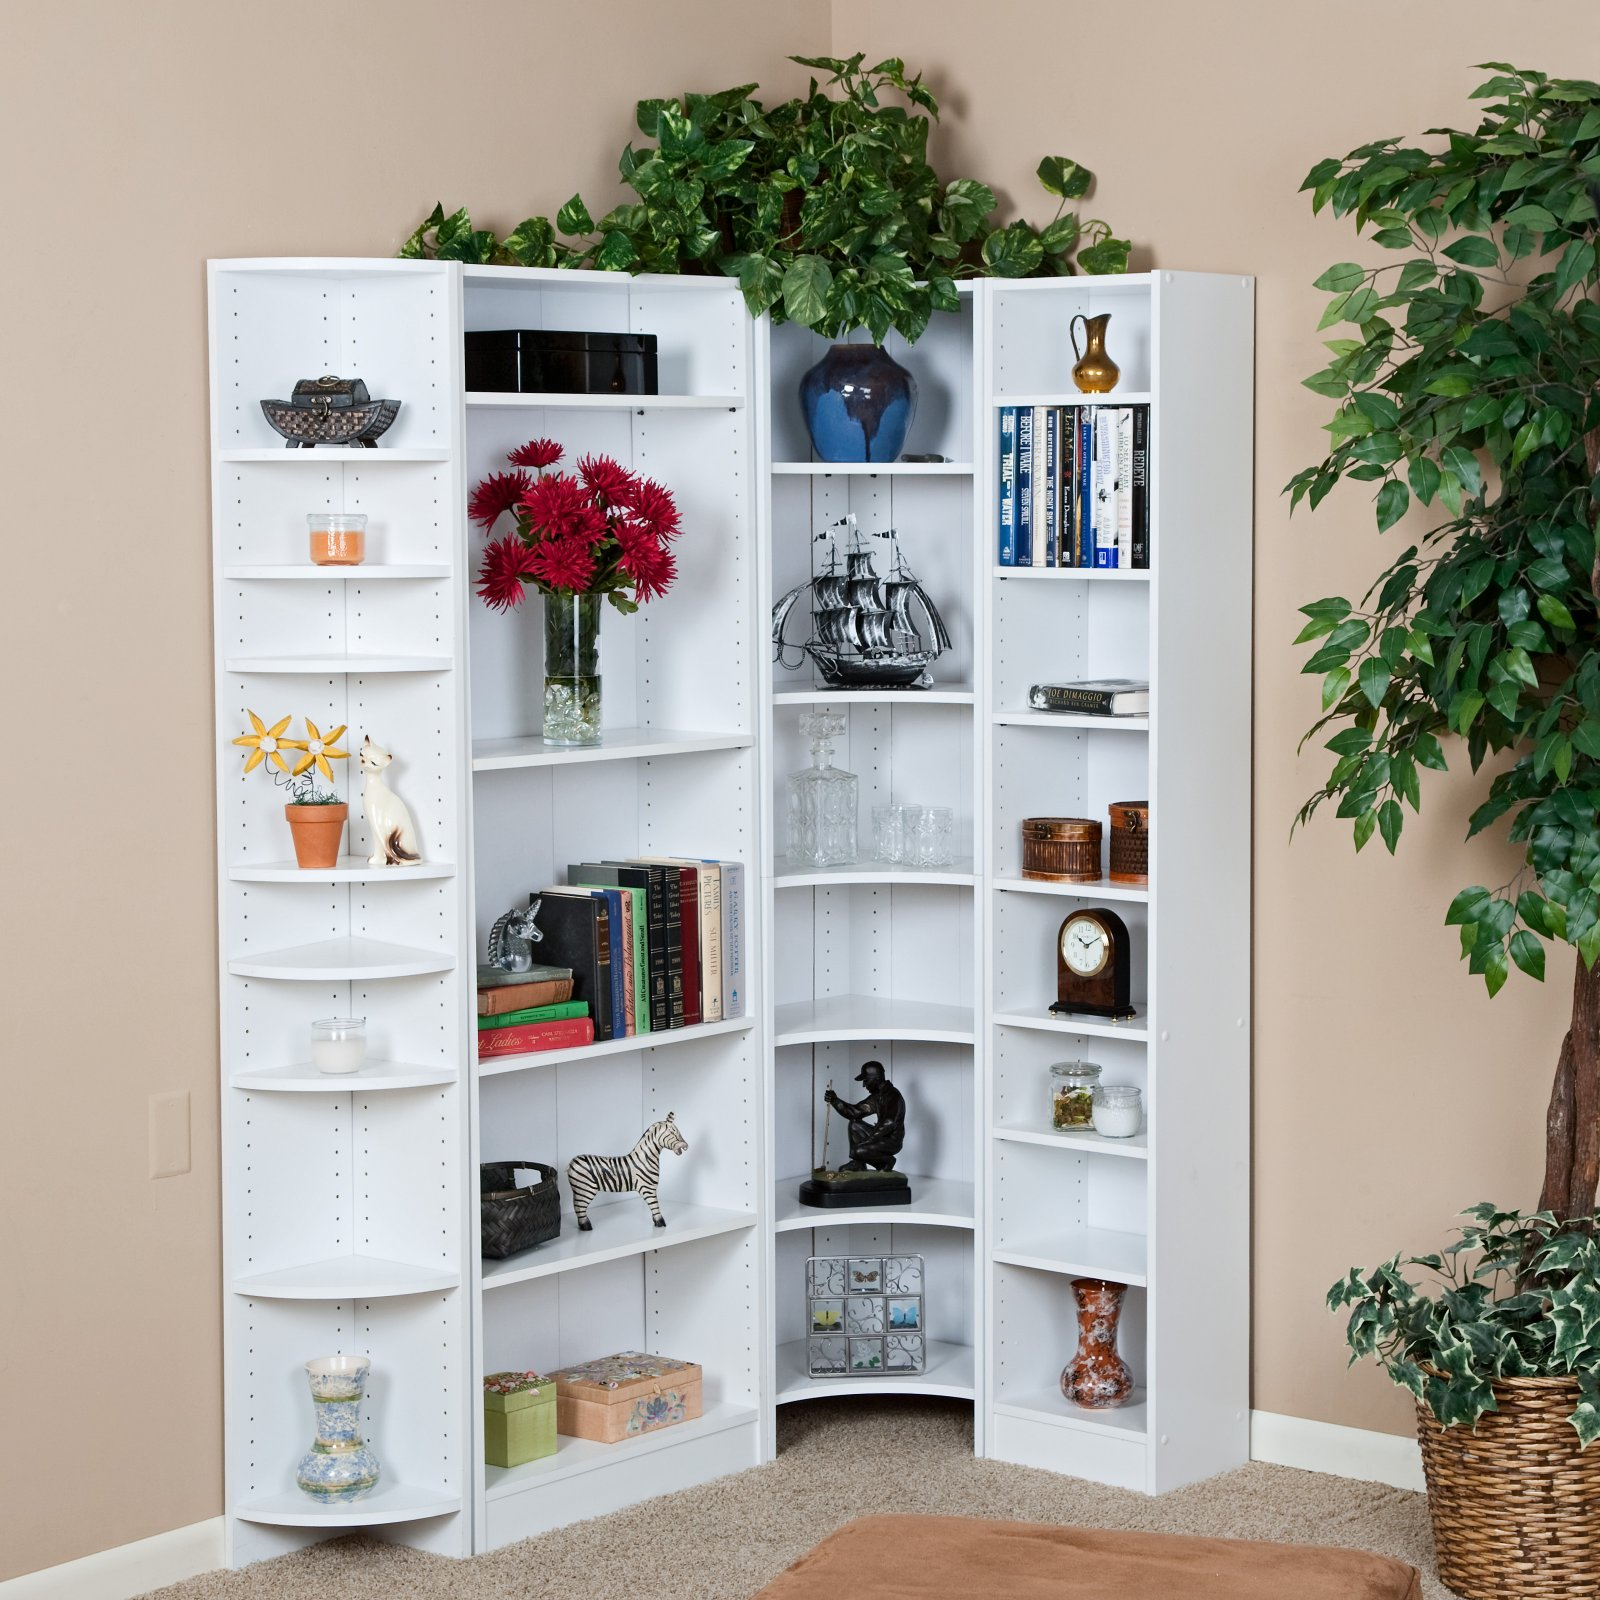 Creative%2BSmall%2BCorner%2BWall%2BCabinets%2B%252820%2529 35 Inventive Small Nook Wall Cupboards Interior